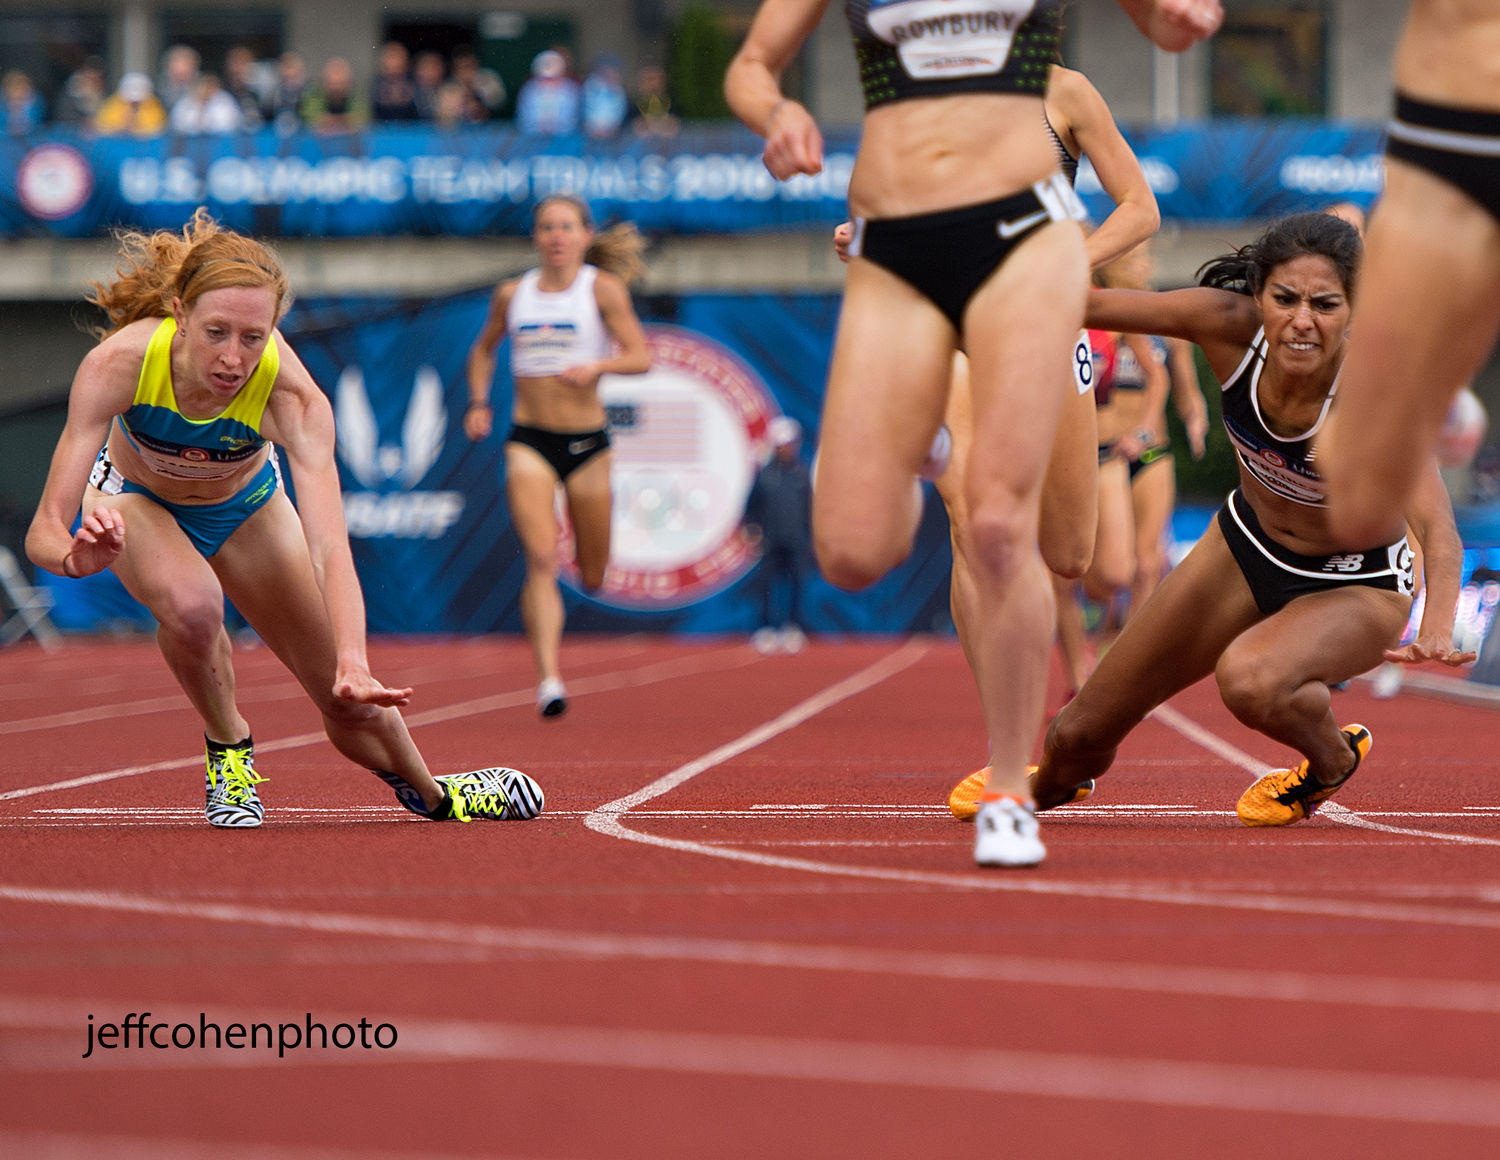 1r2016_oly_trials_day_9b_mart_1500mw_fall_at_line_jeff_cohen_photo_29530_web.jpg